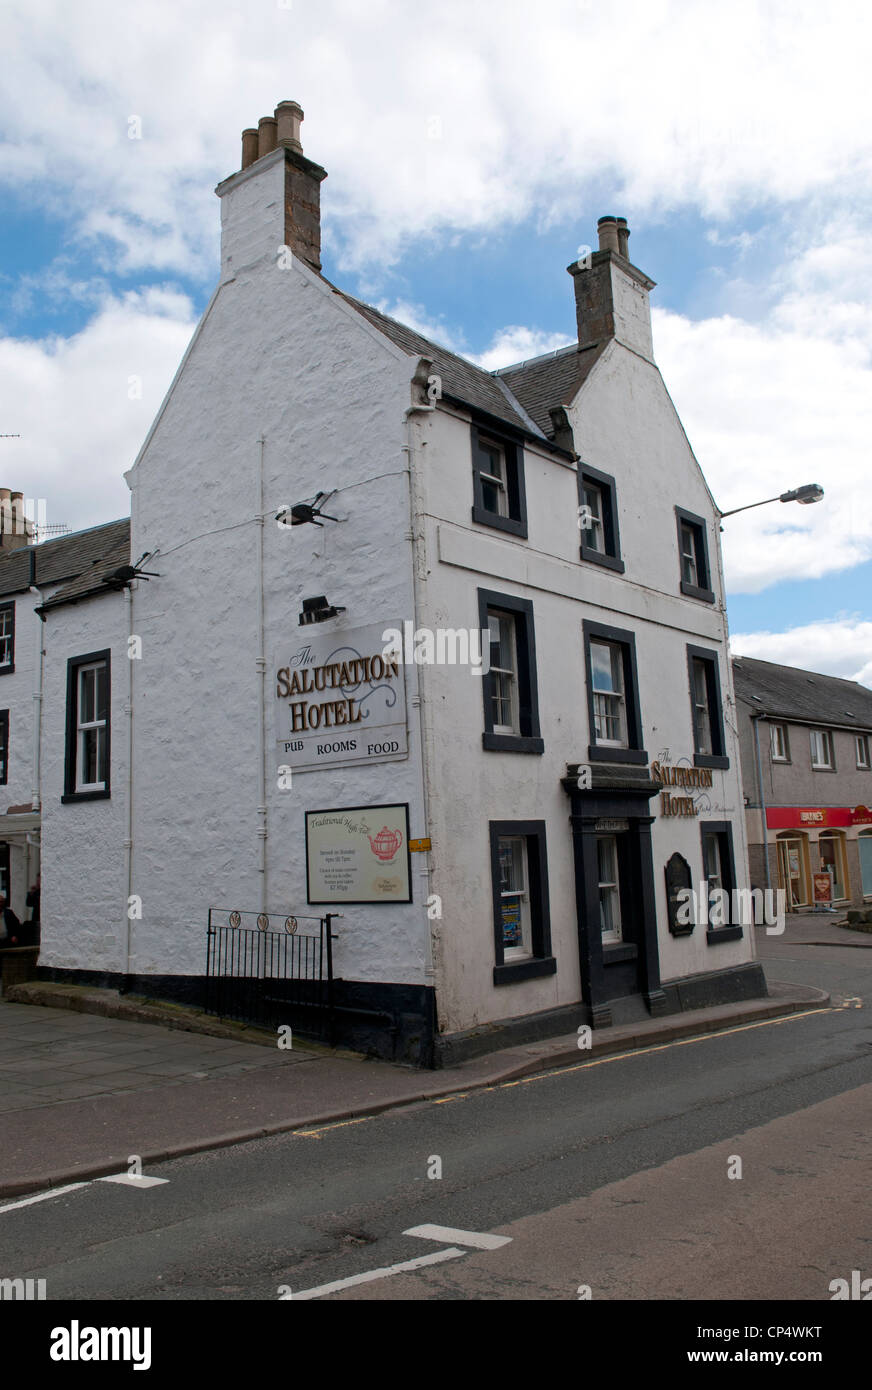 The Salutation Hotel in Kinross, Perthshire Scotland - Stock Image